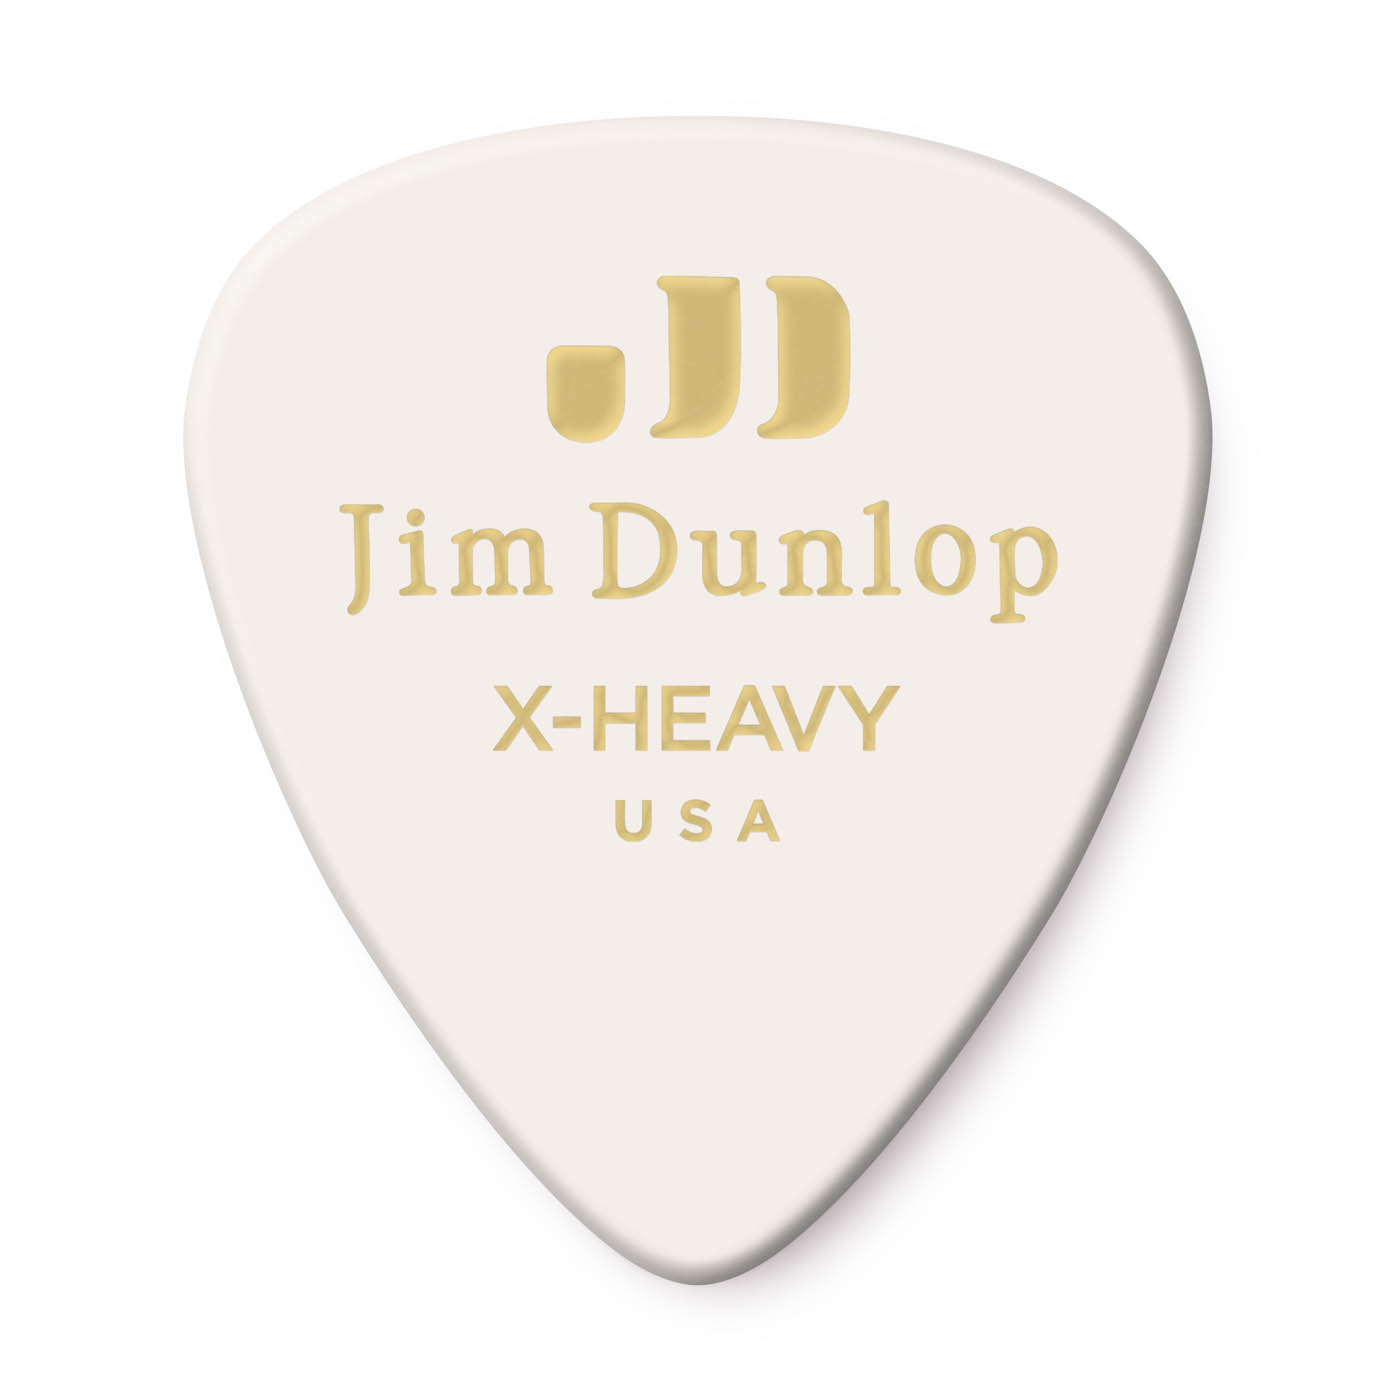 Dunlop - White Classic extra heavy